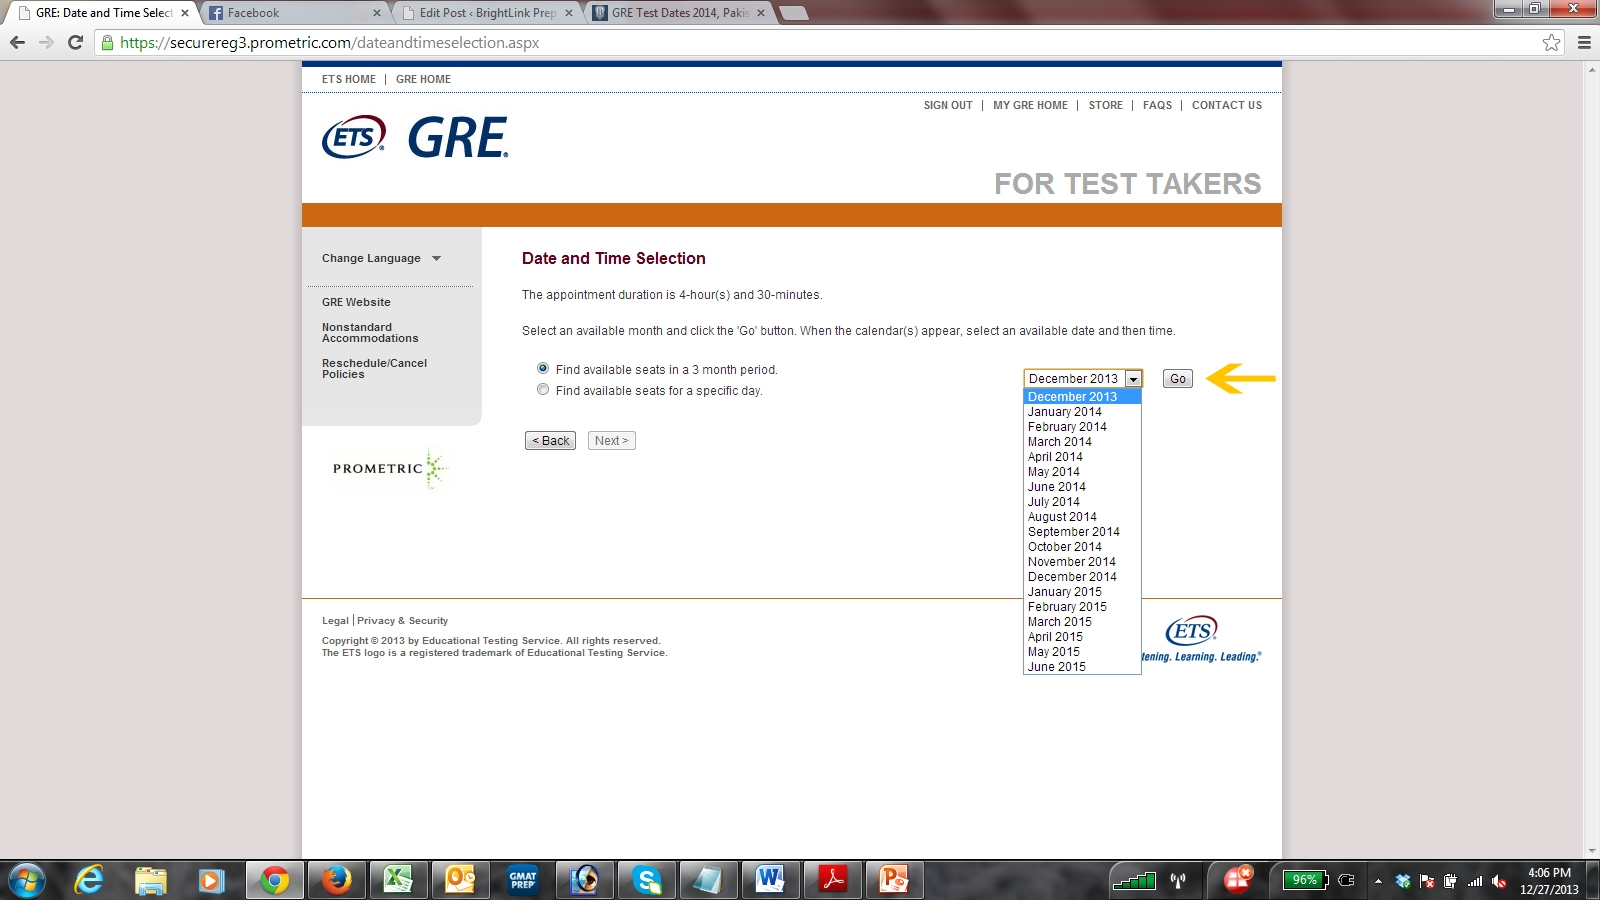 Gre Test Dates 2016, Pakistan  Brightlink Prep Lahore. Is Hiv Bacterial Or Viral Colombia Law School. Wisconsin Dells Marriott Sexual Harassment Act. Accredited Nursing Degree College Free Laptop. Maintenance Of Way Equipment. Minnesota Workers Compensation Insurers Association. Cpa Liability Insurance Team Select Home Care. Garage Door Repair Denver Co. When Filing Bankruptcy What Can You Keep